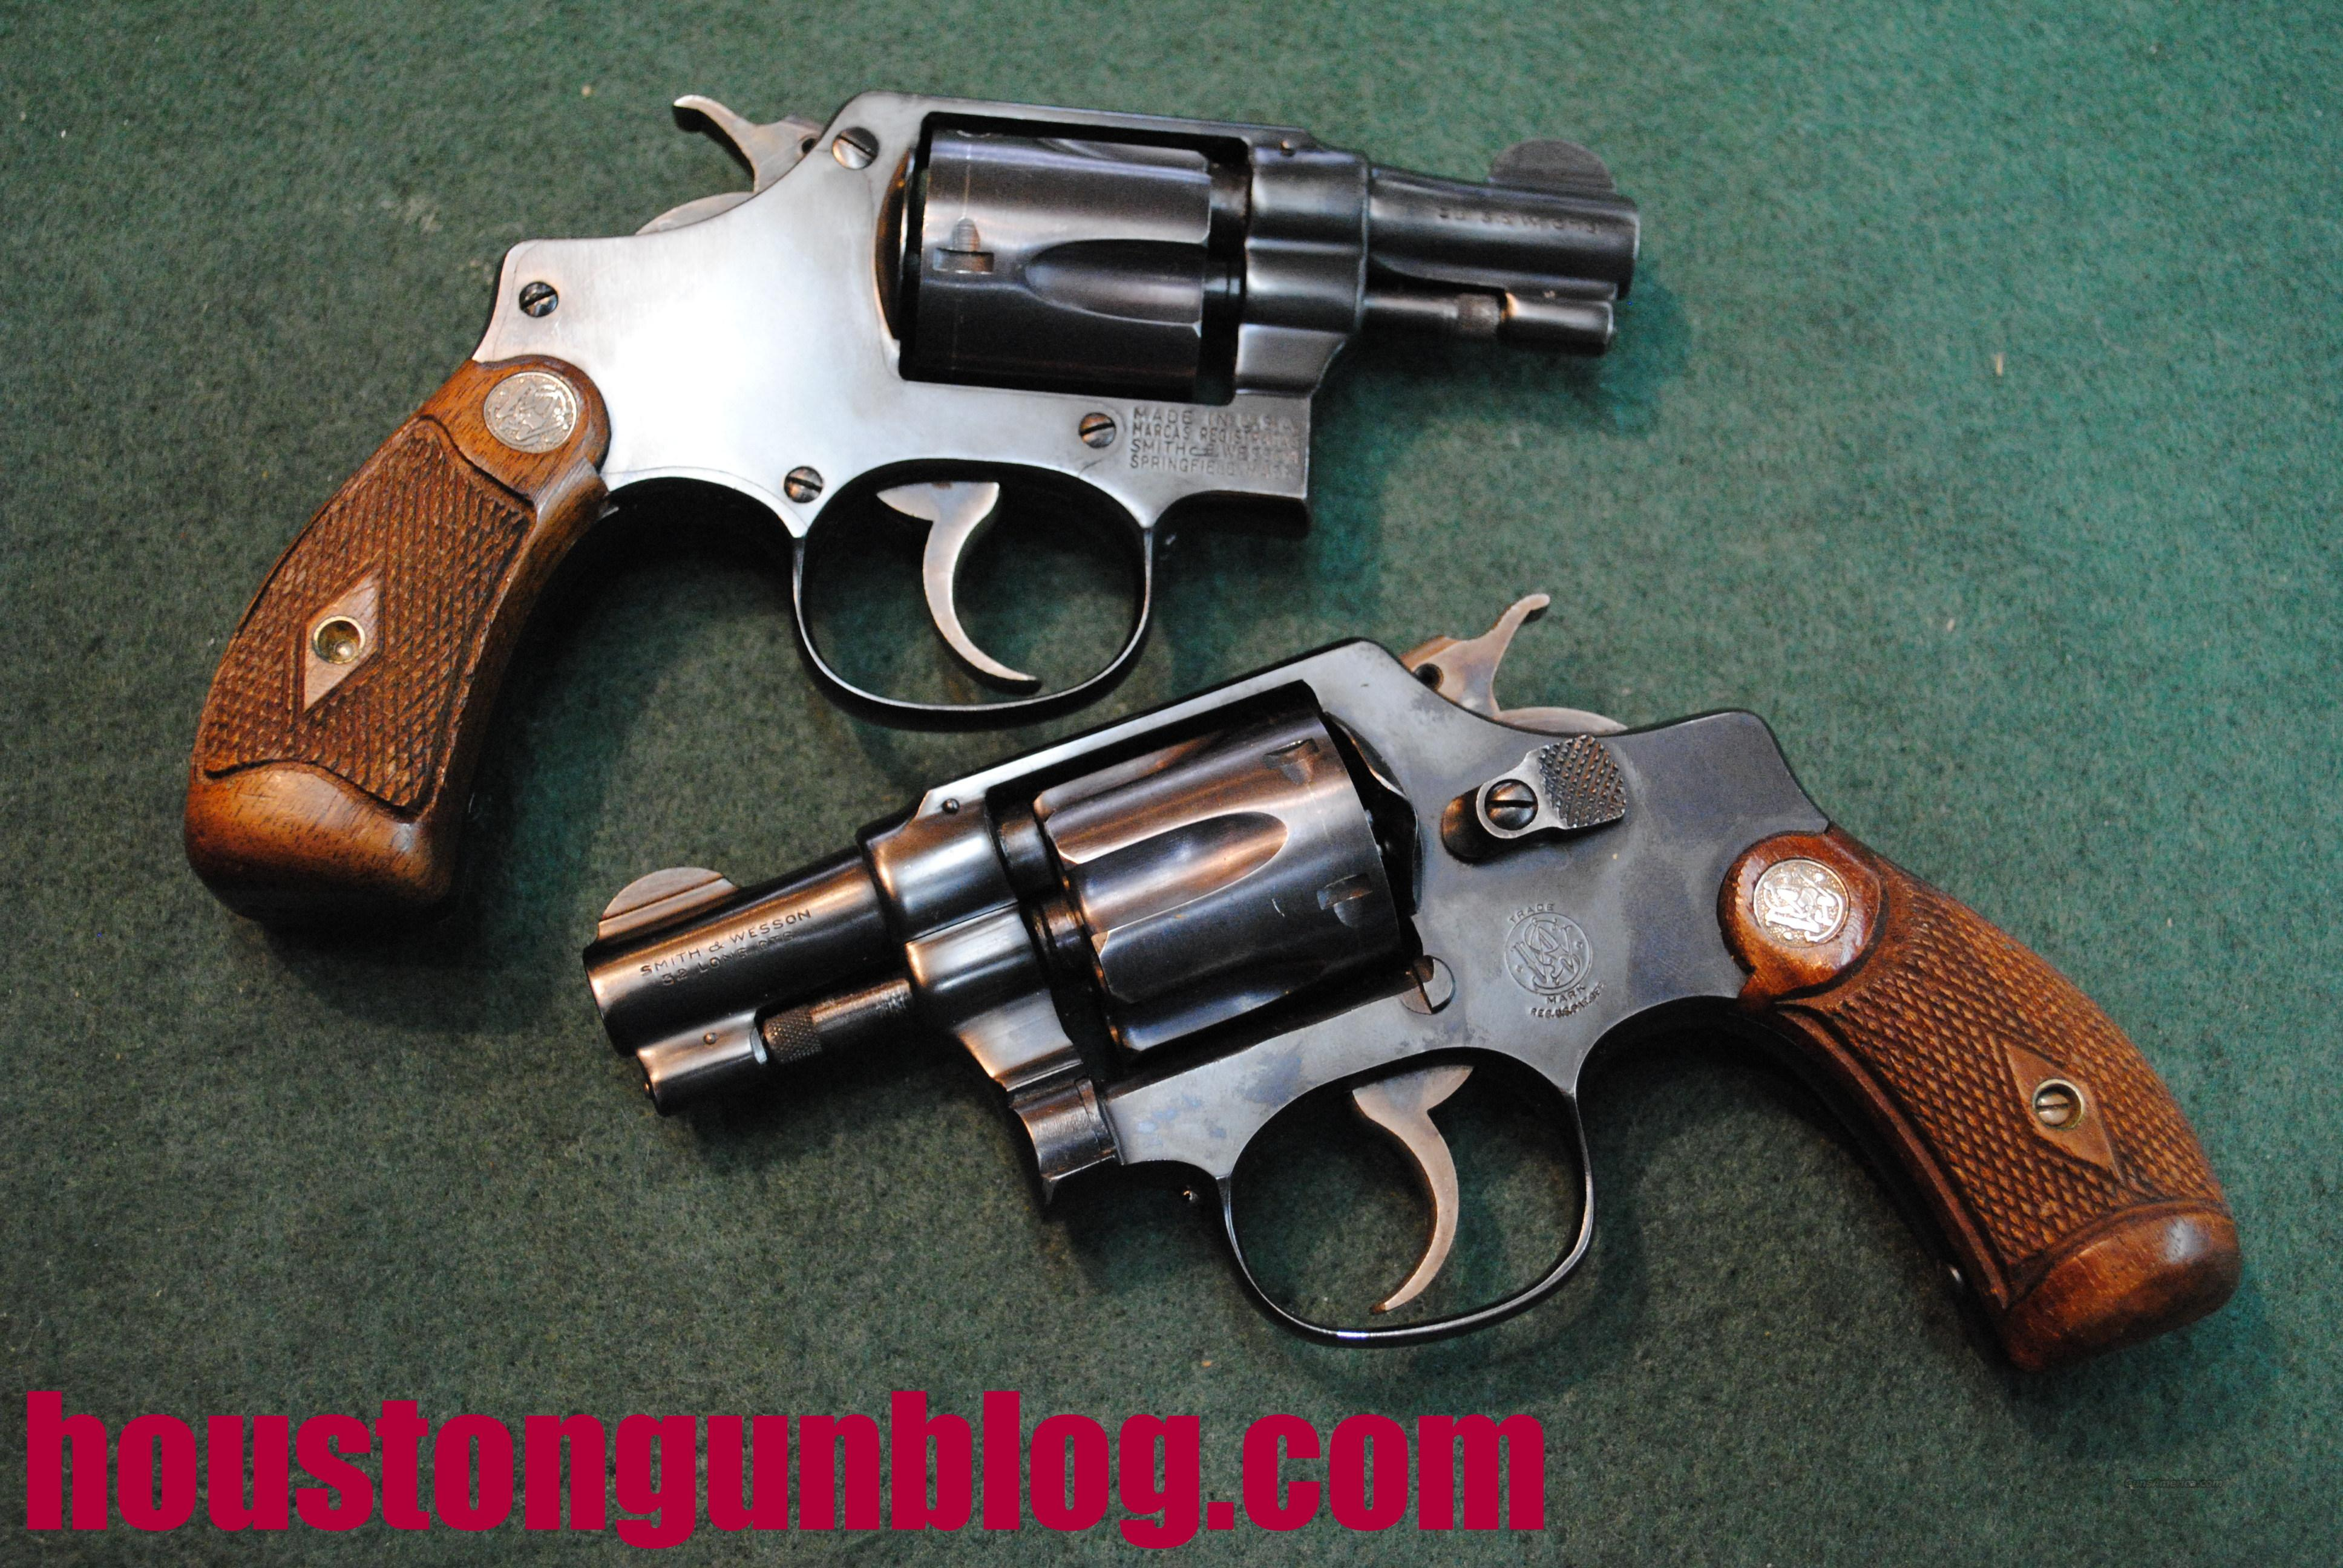 PAIR OF TWO S&W SMITH & WESSON I-FRAME TRANSITION REVOLVERS SCARCE  Guns > Pistols > Smith & Wesson Revolvers > Full Frame Revolver